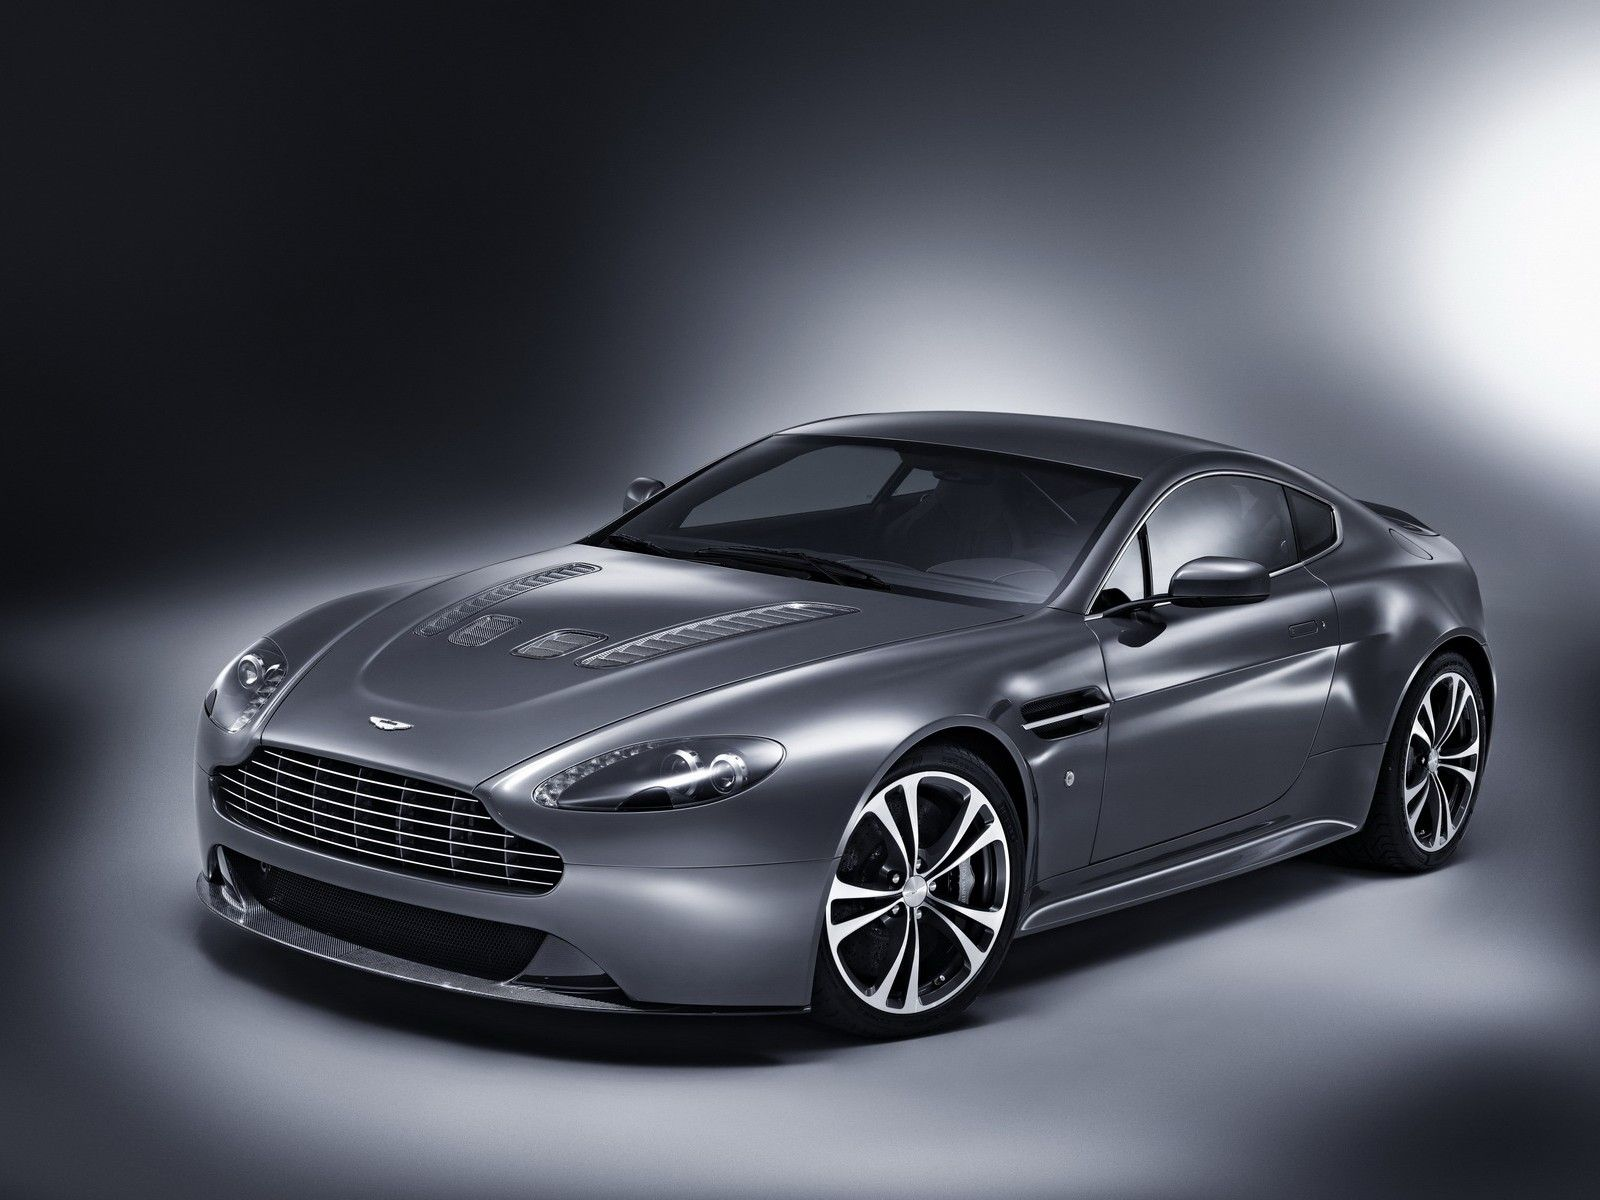 e52a94c70591c7cf386b9a080d4e5c4f Take A Look About aston Martin 2009 with Terrific Pictures Cars Review